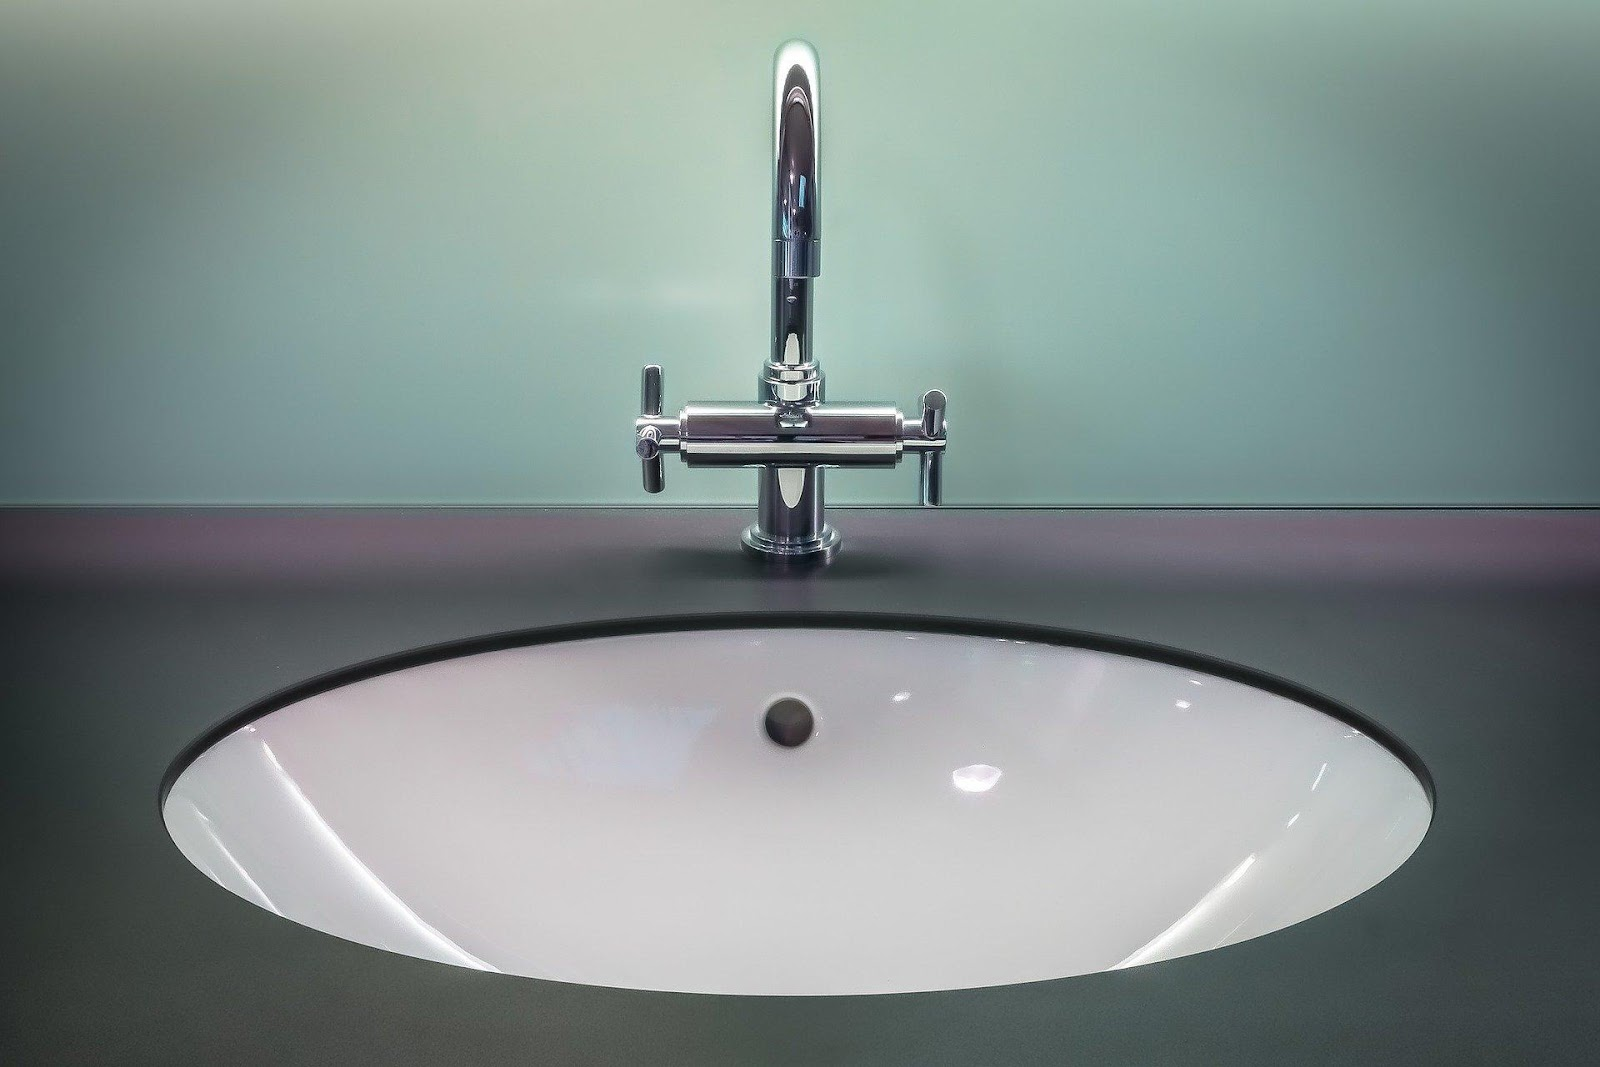 A sink with a faucet  Description automatically generated with medium confidence